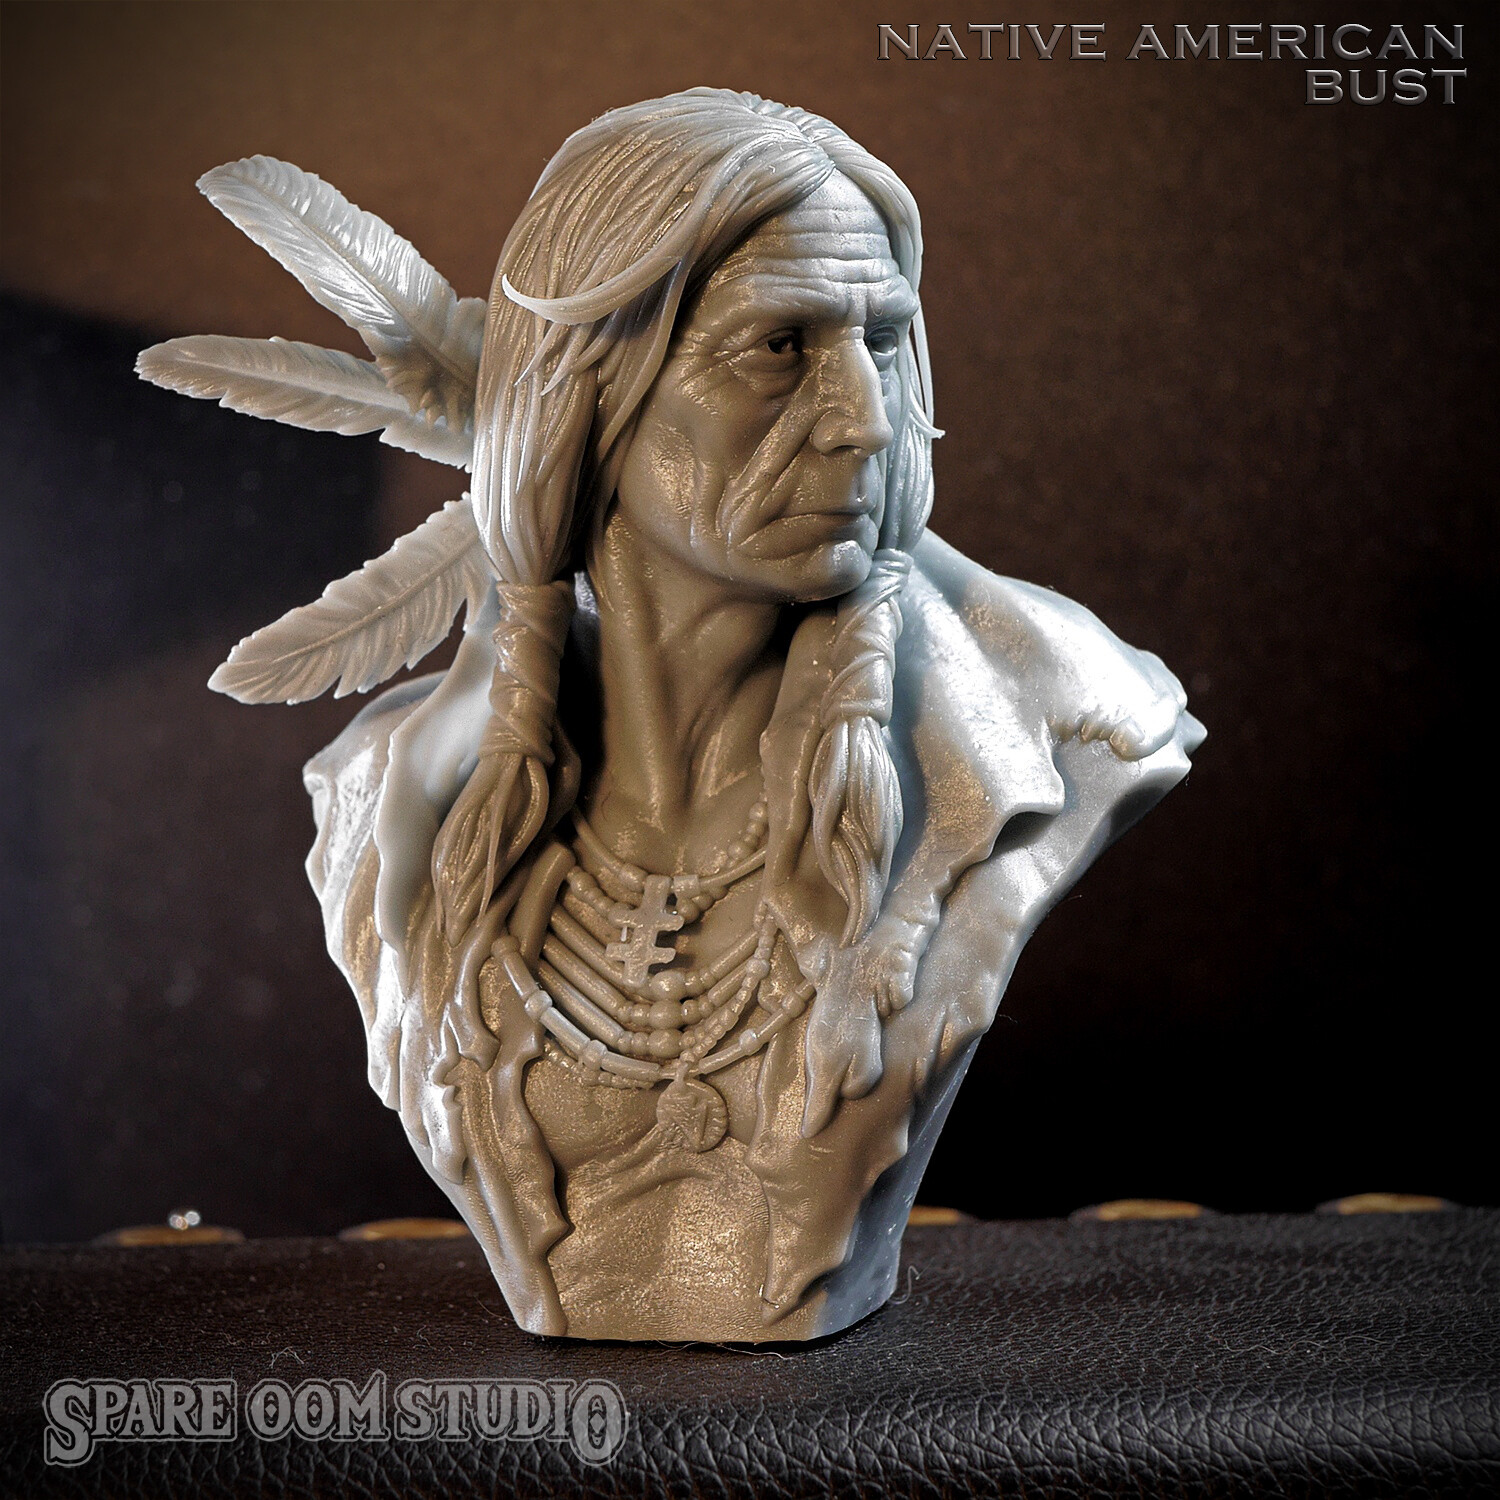 Native American bust STL